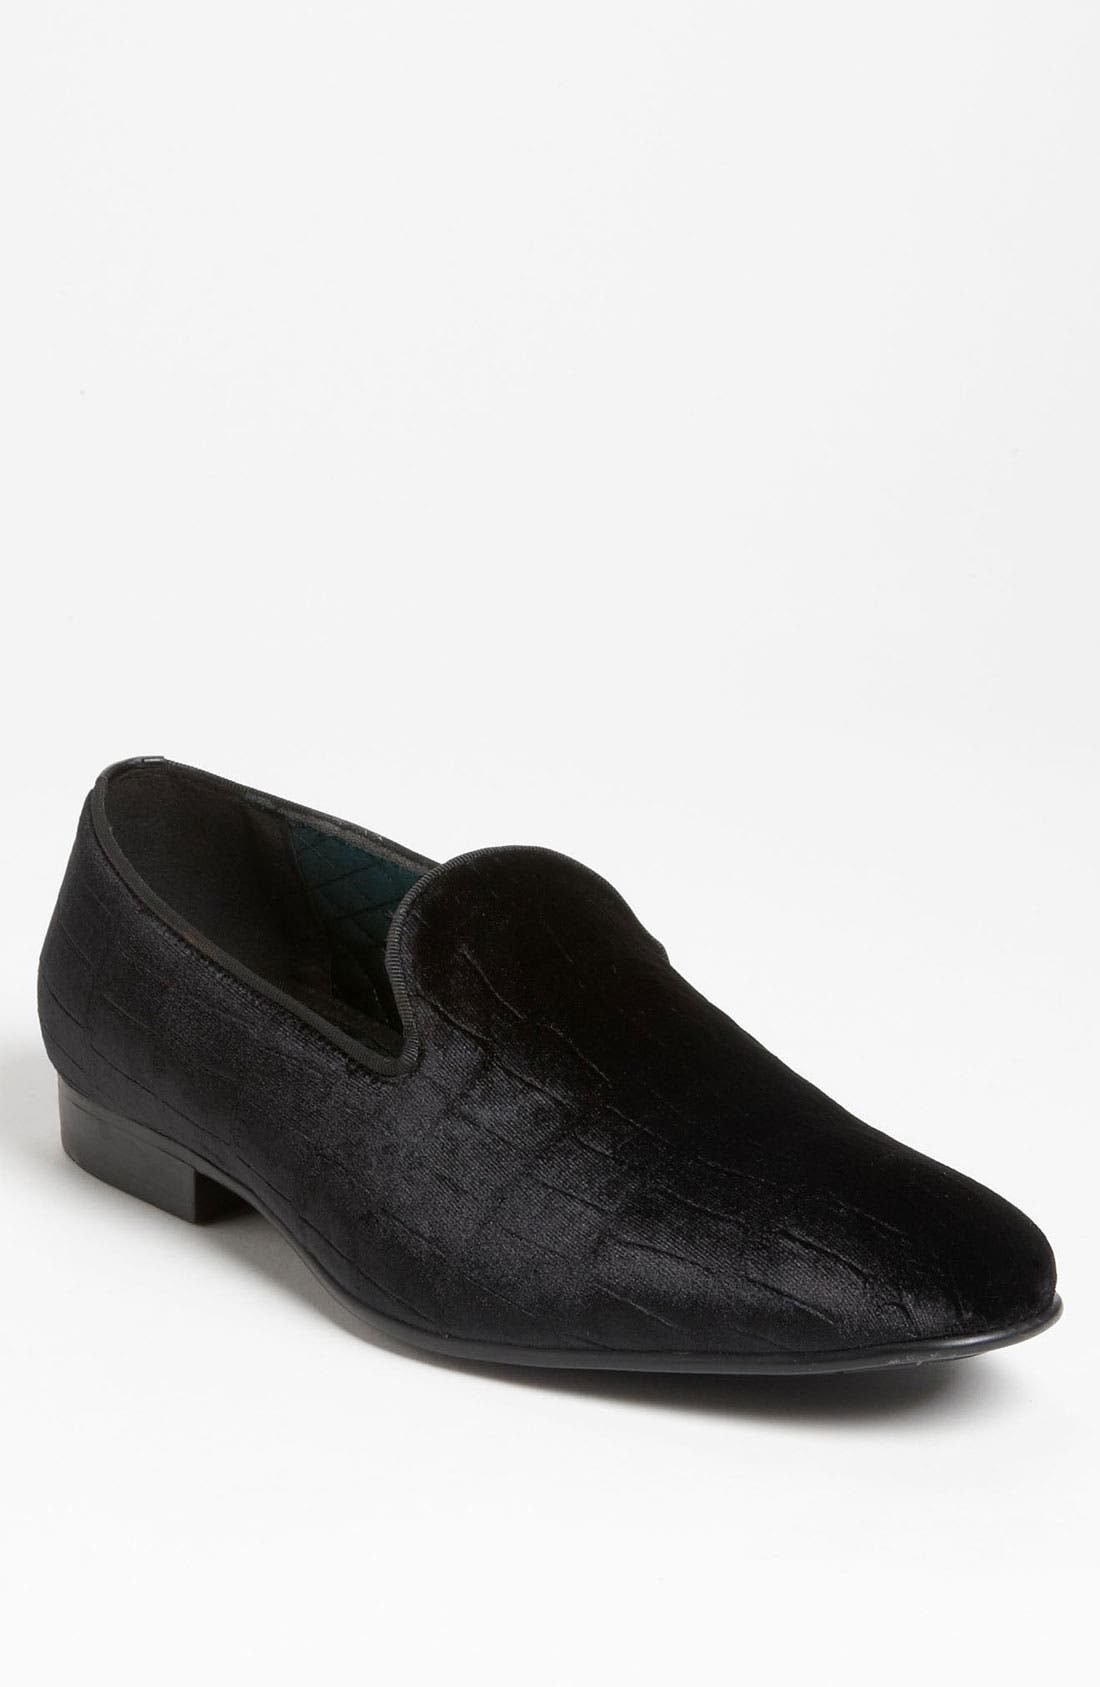 Alternate Image 1 Selected - ALDO 'Lanius' Slip-On